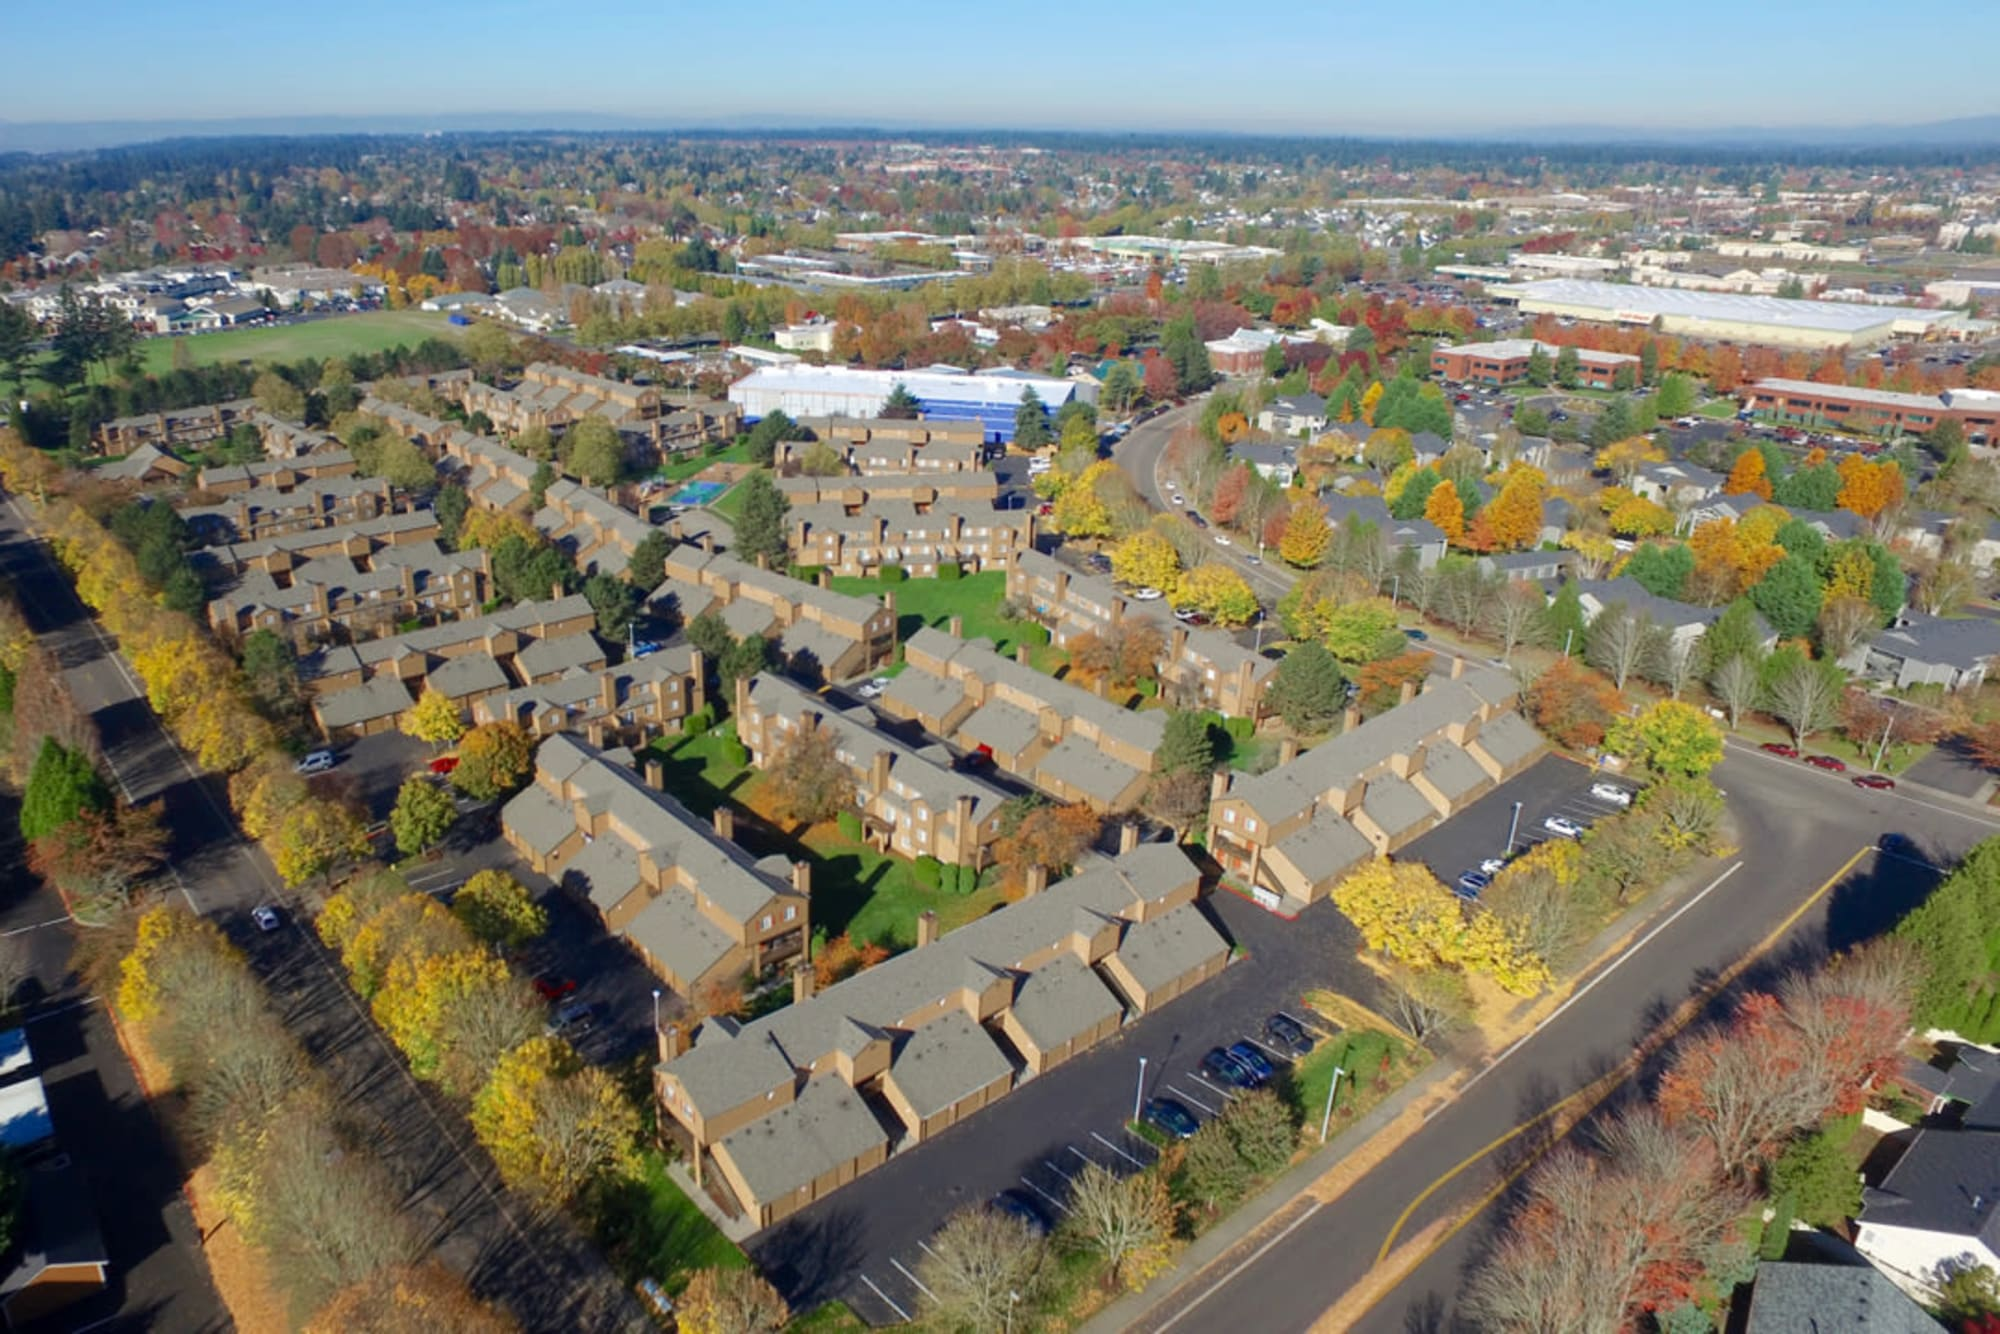 Aerial view of the property and surrounding area at Renaissance at 29th Apartments in Vancouver, Washington